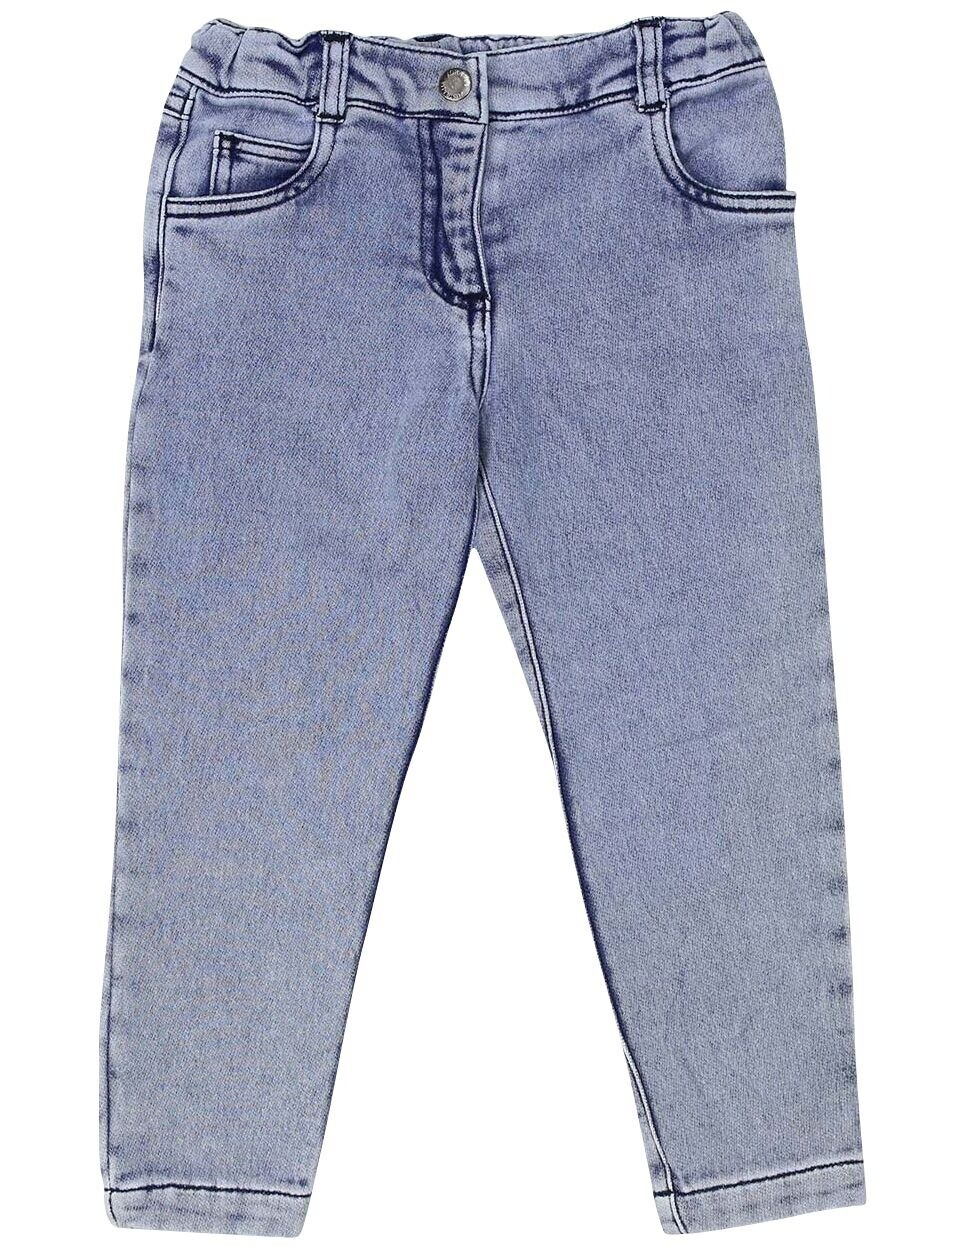 Stars Light Denim Jean